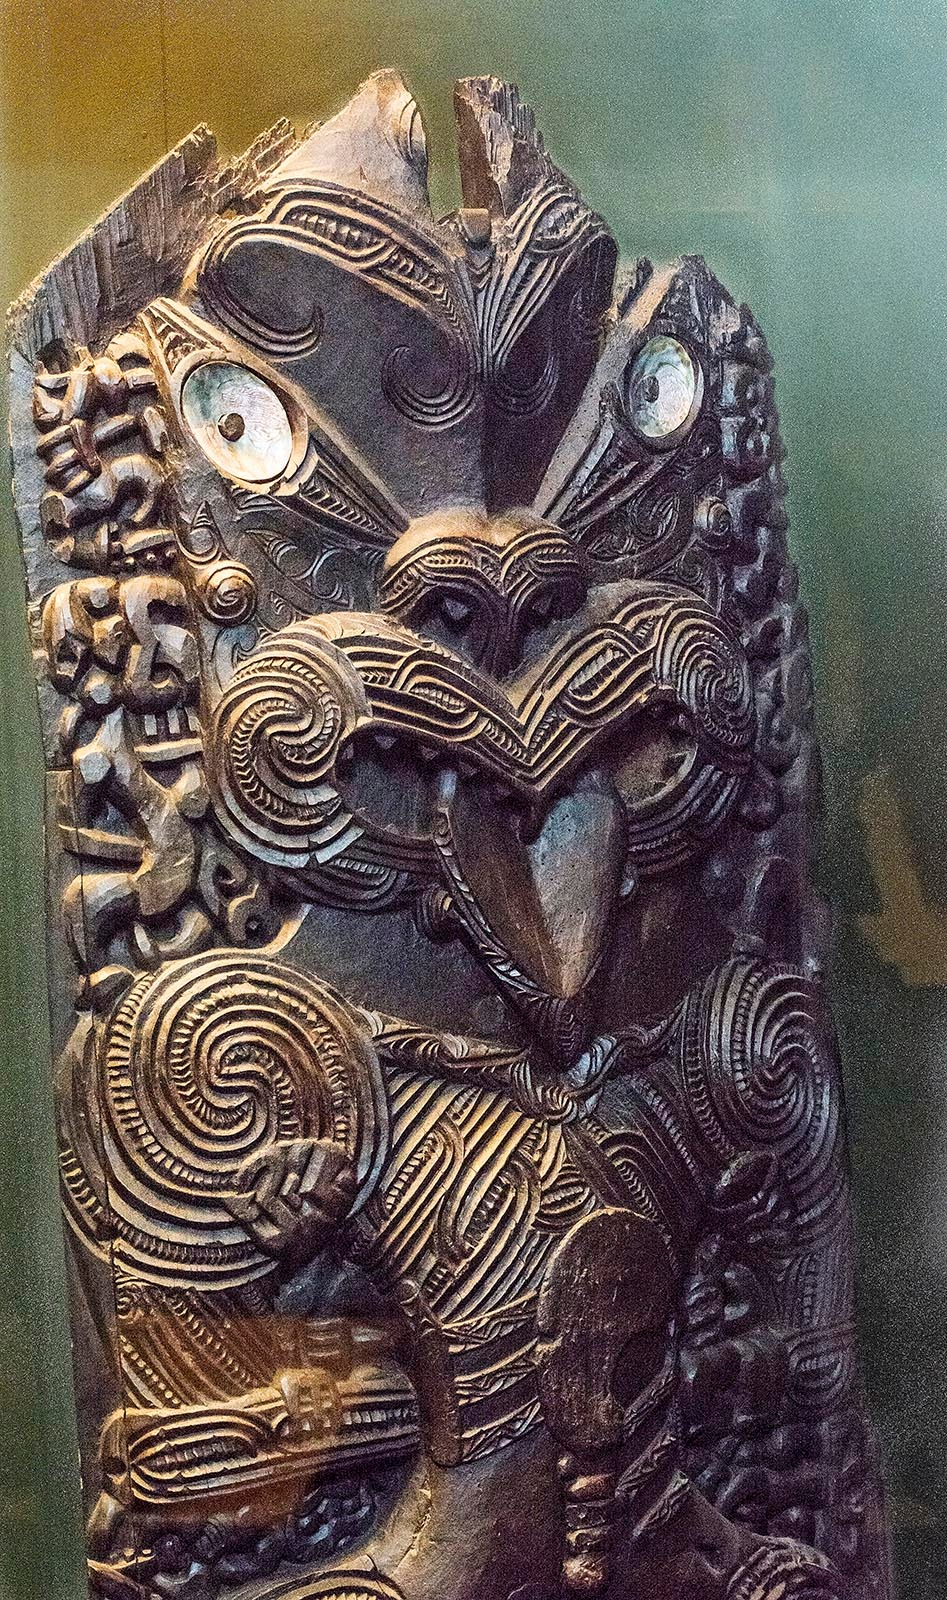 Day at the Museum - Maori Carvings by TerraEncounters